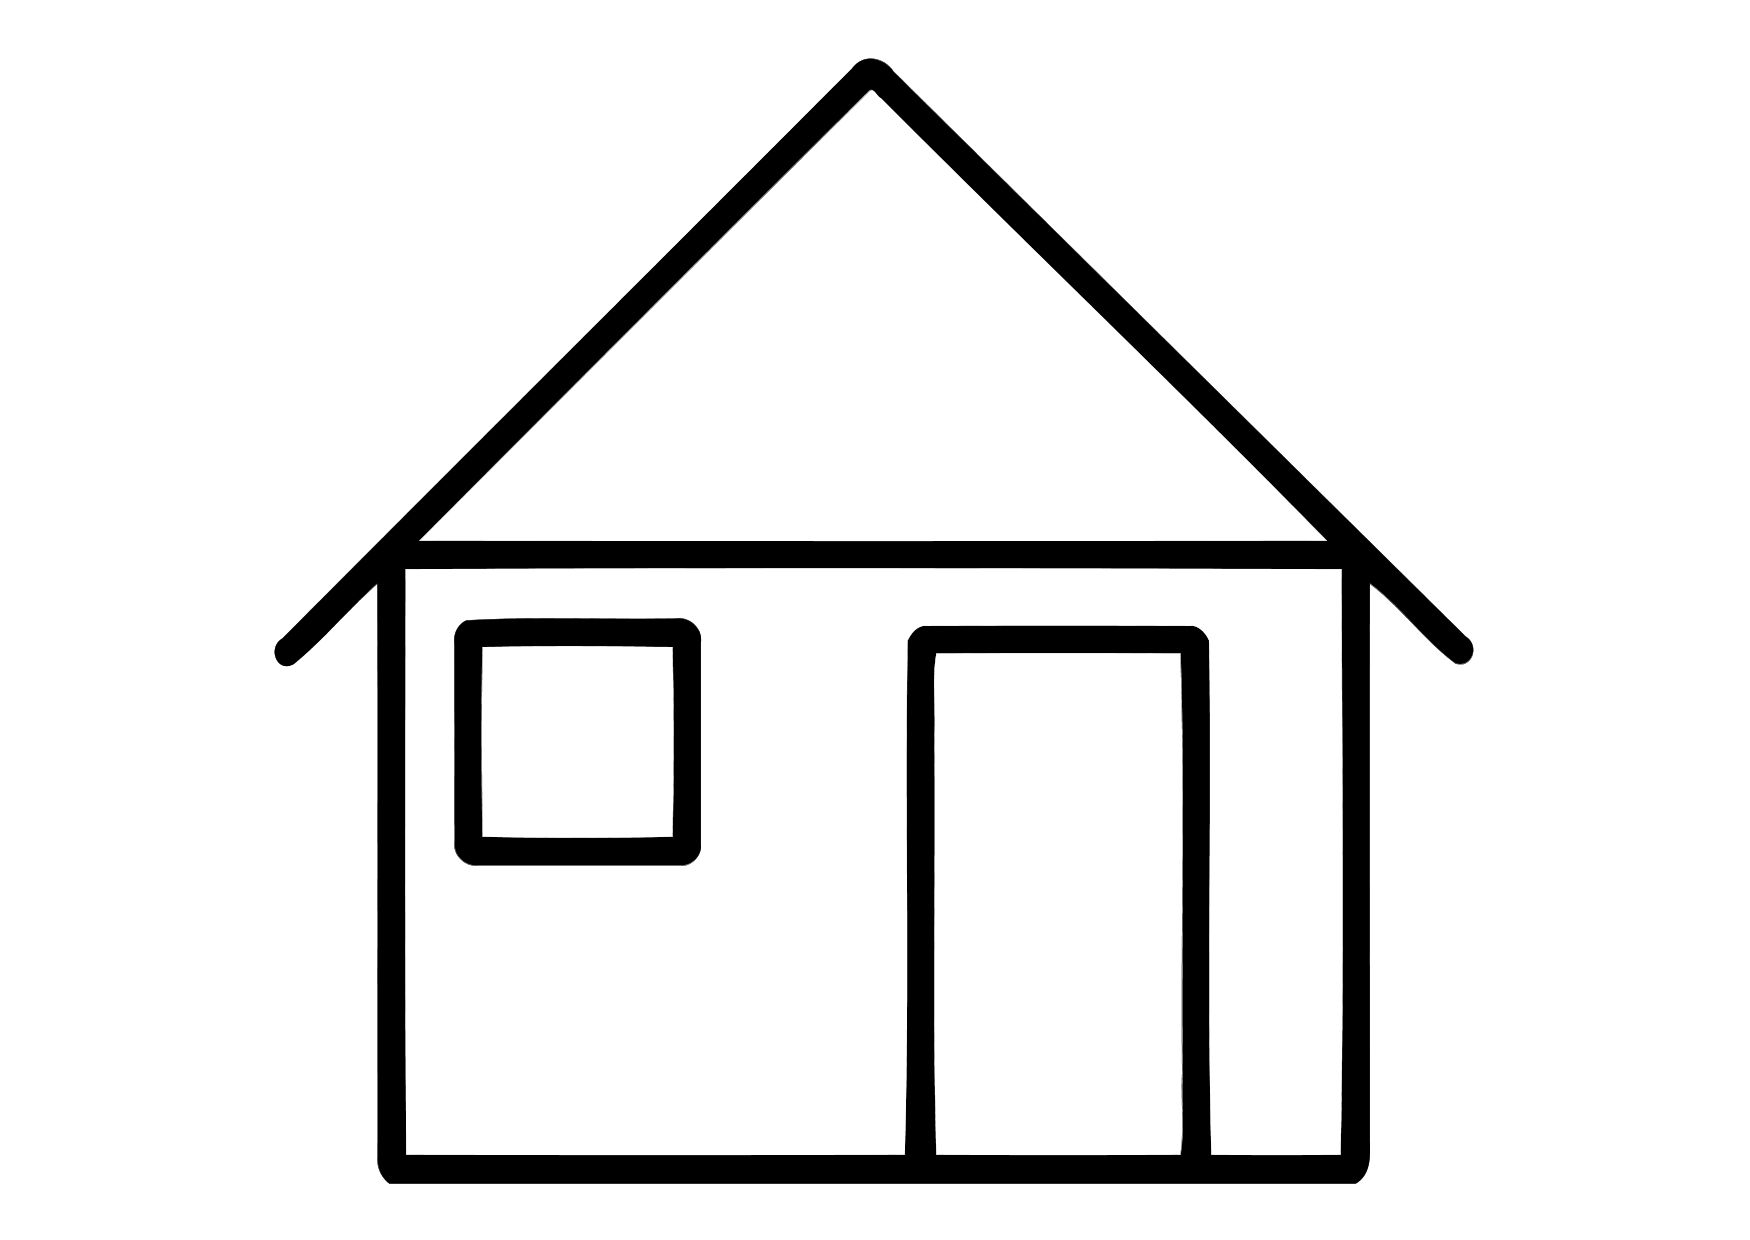 pictures of houses to color victorian houses coloring pages download and print for free of houses to pictures color